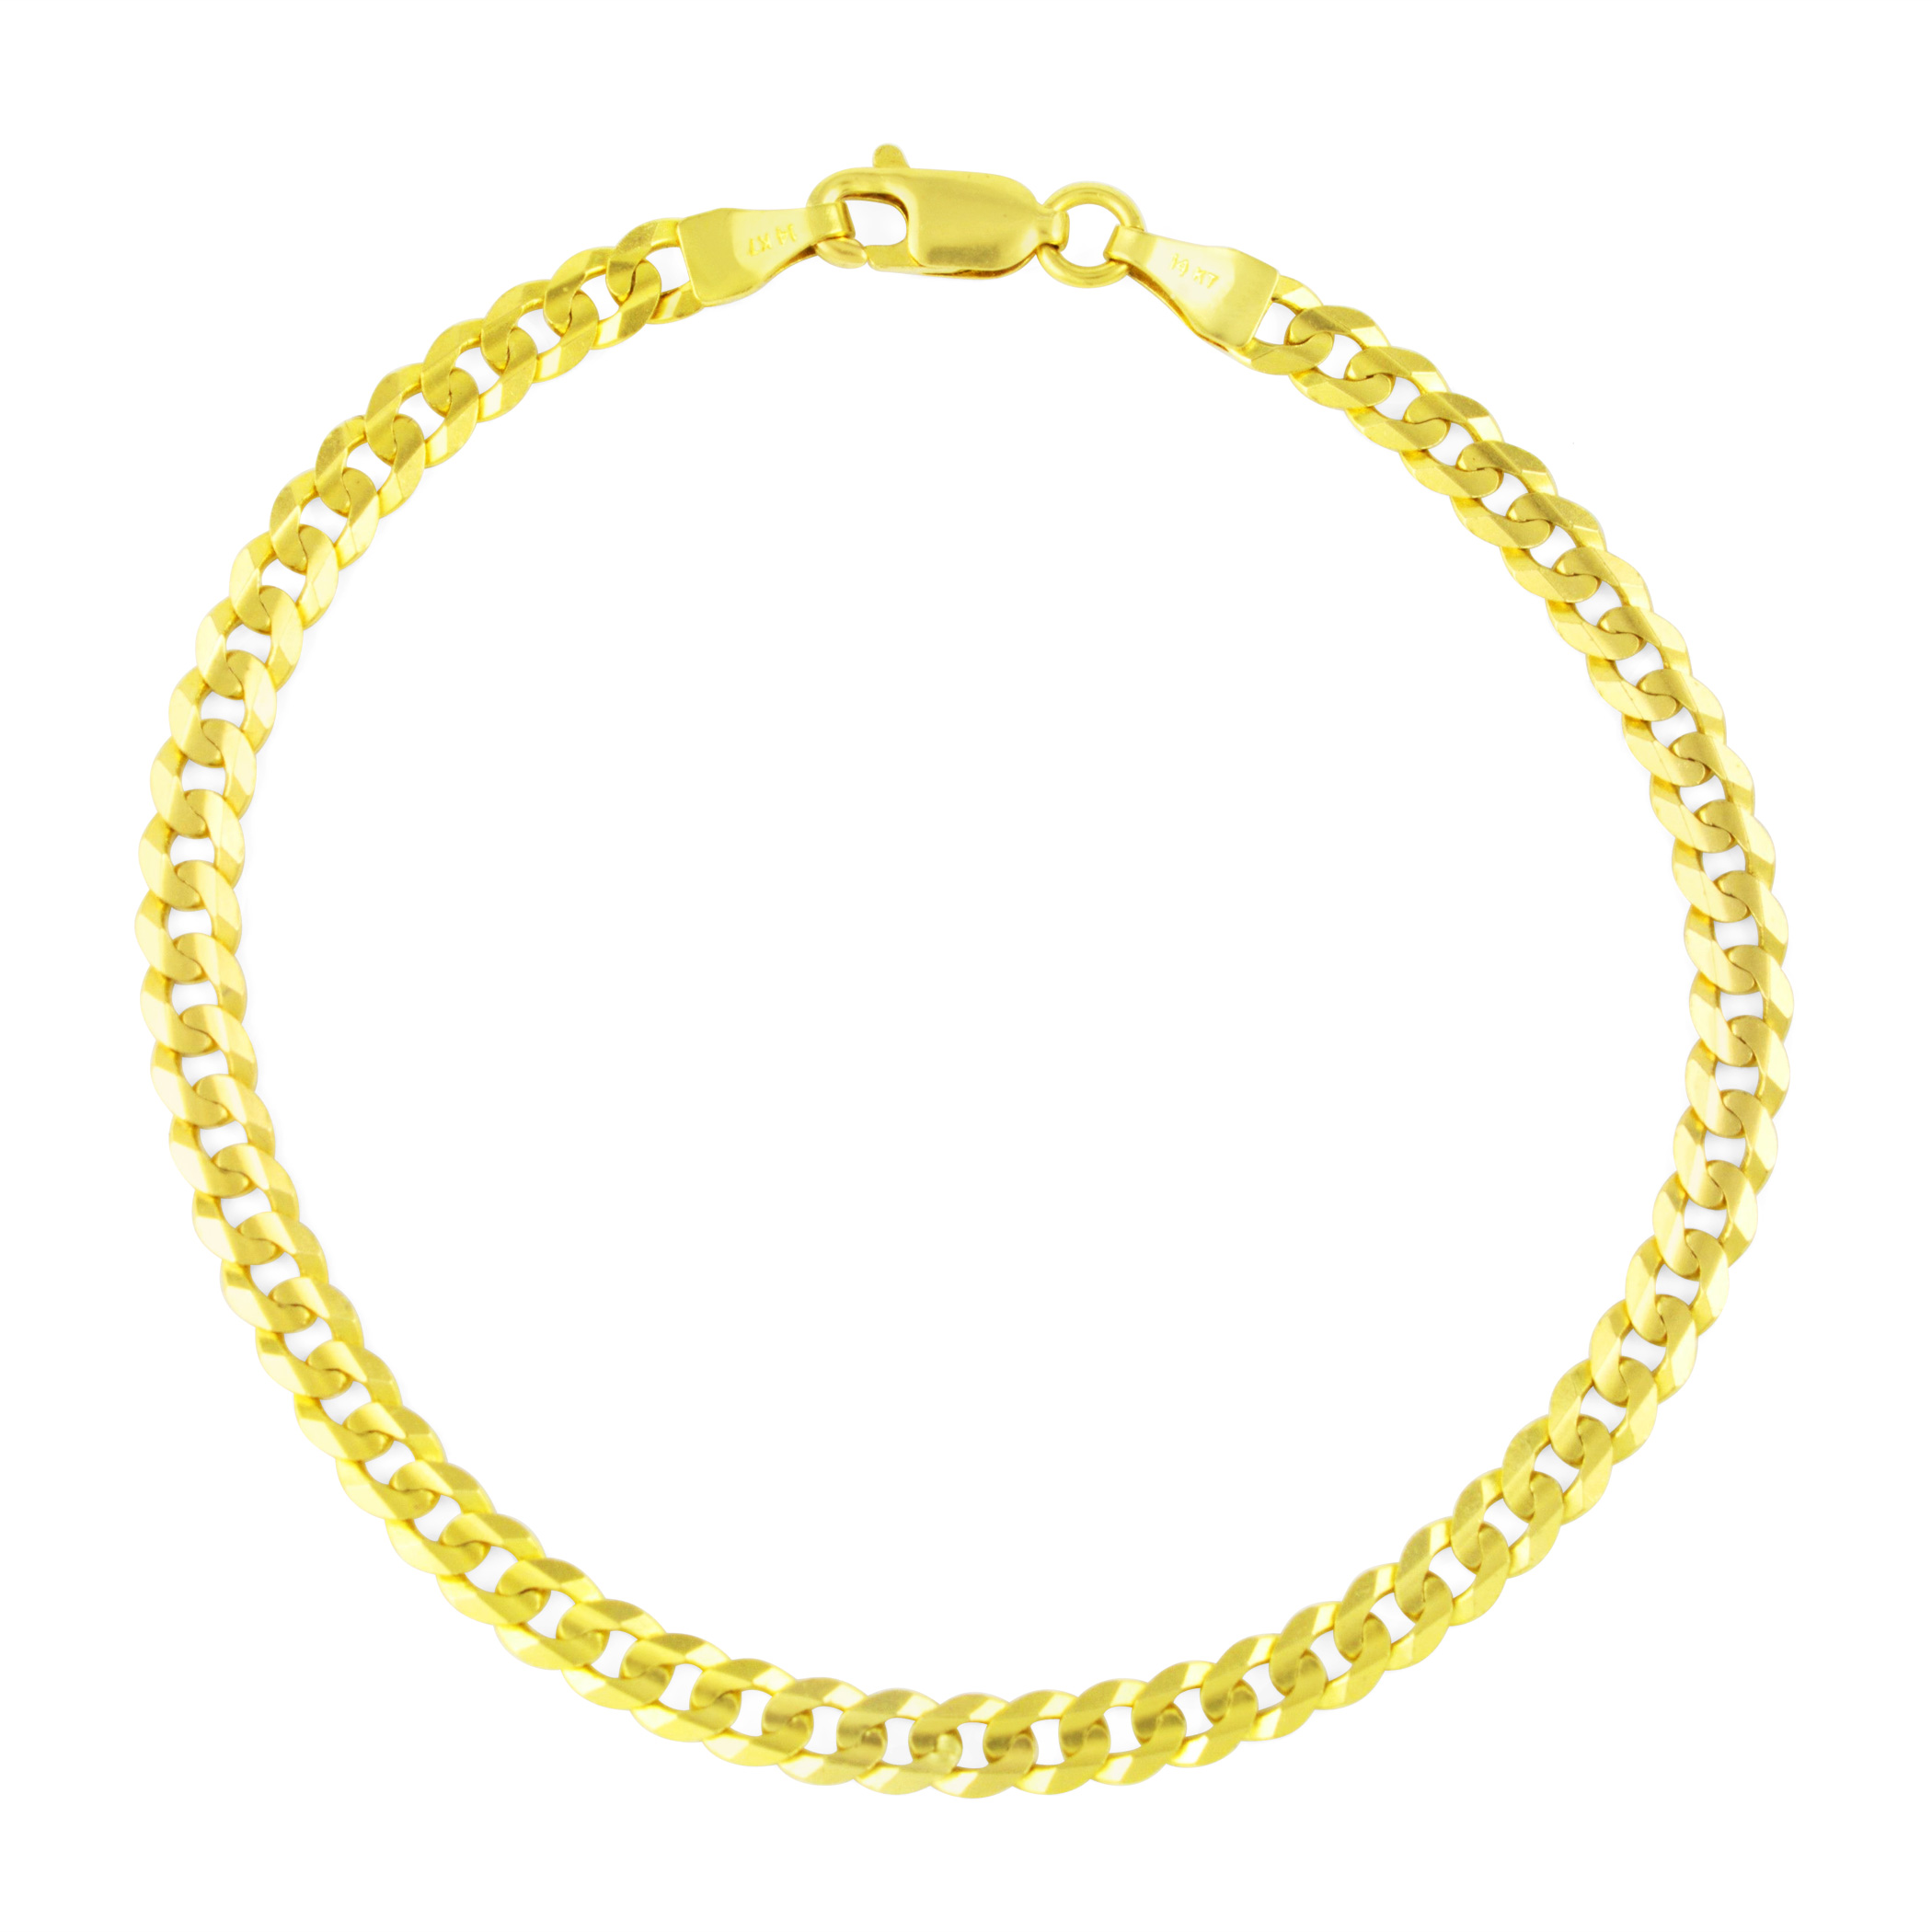 14K-Solid-Yellow-Gold-4mm-Cuban-Curb-Chain-Link-Bracelet-Lobster-Clasp-7-034-8-034-9-034 thumbnail 13